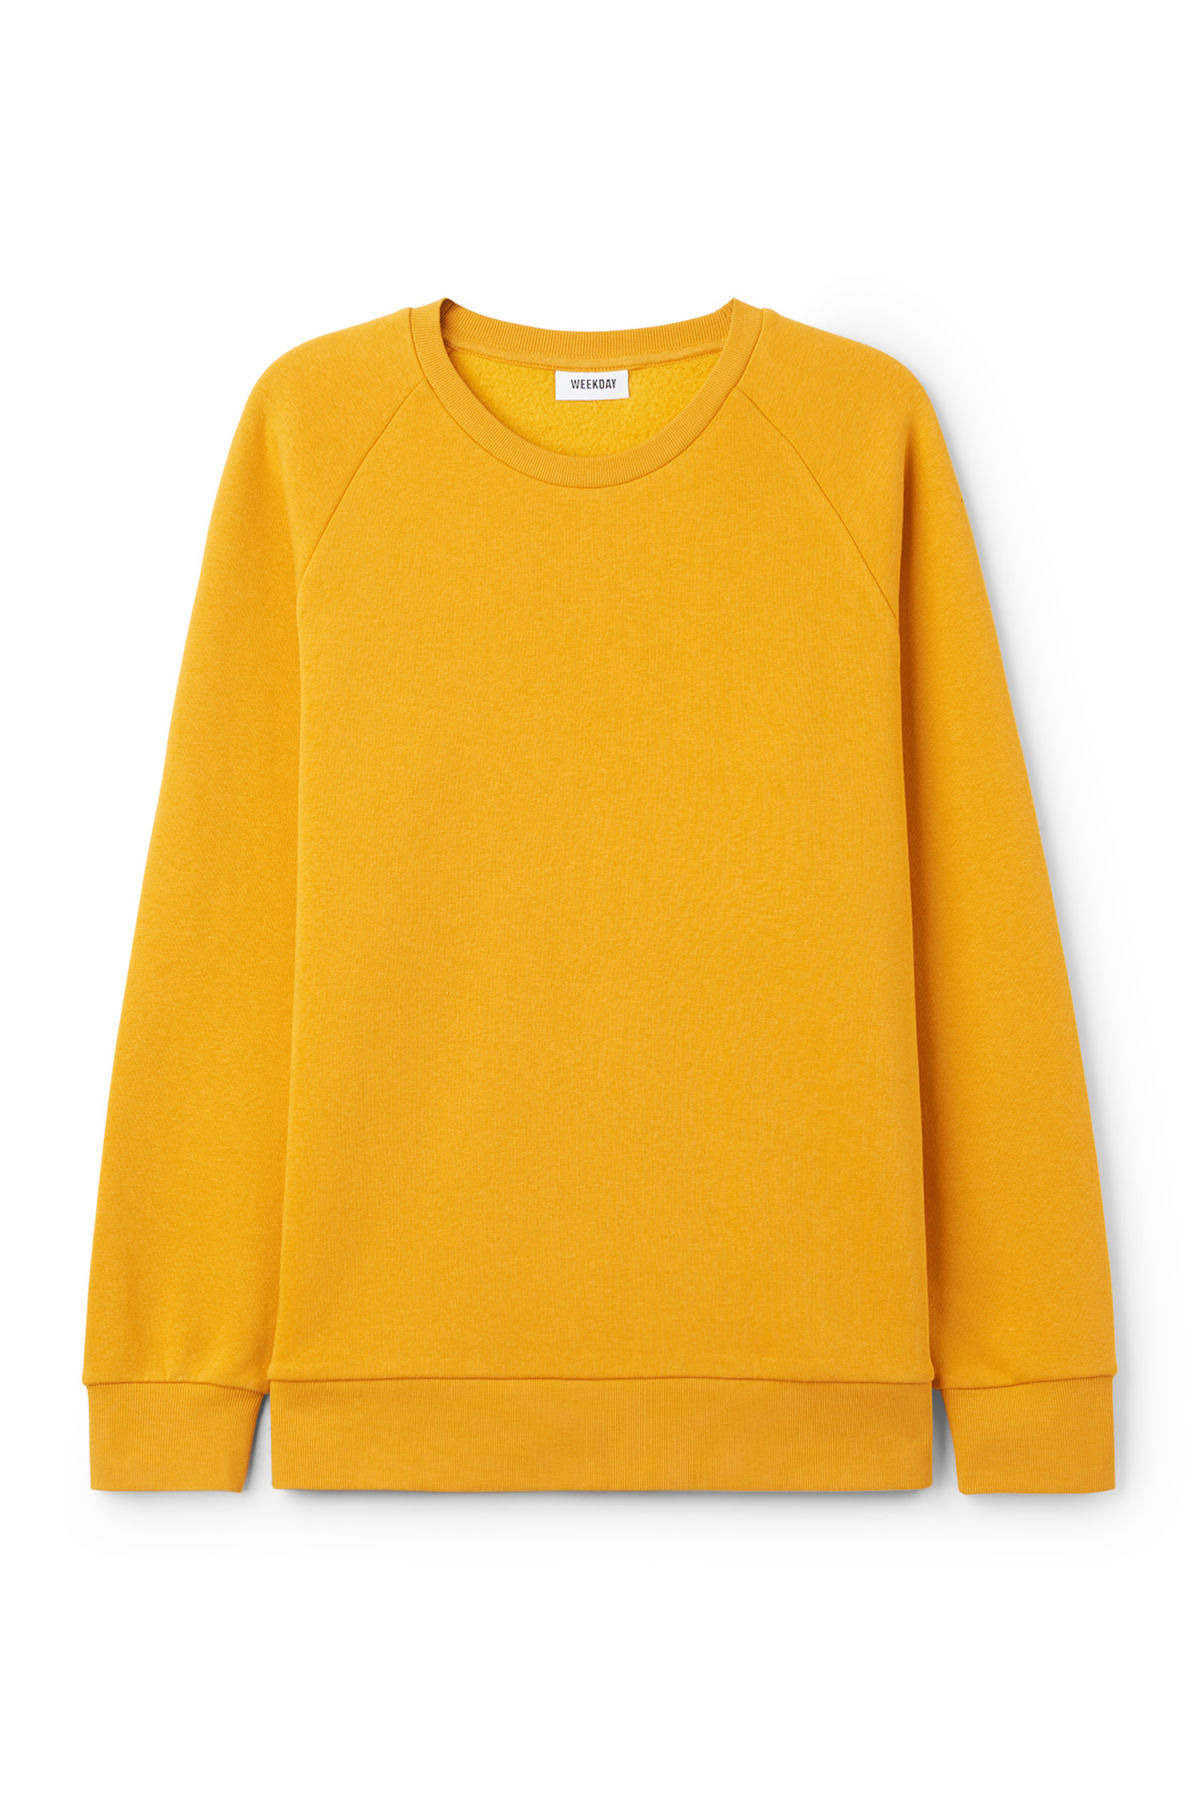 Paris Sweatshirt - Dark Yellow - Hoodies & sweatshirts - Weekday